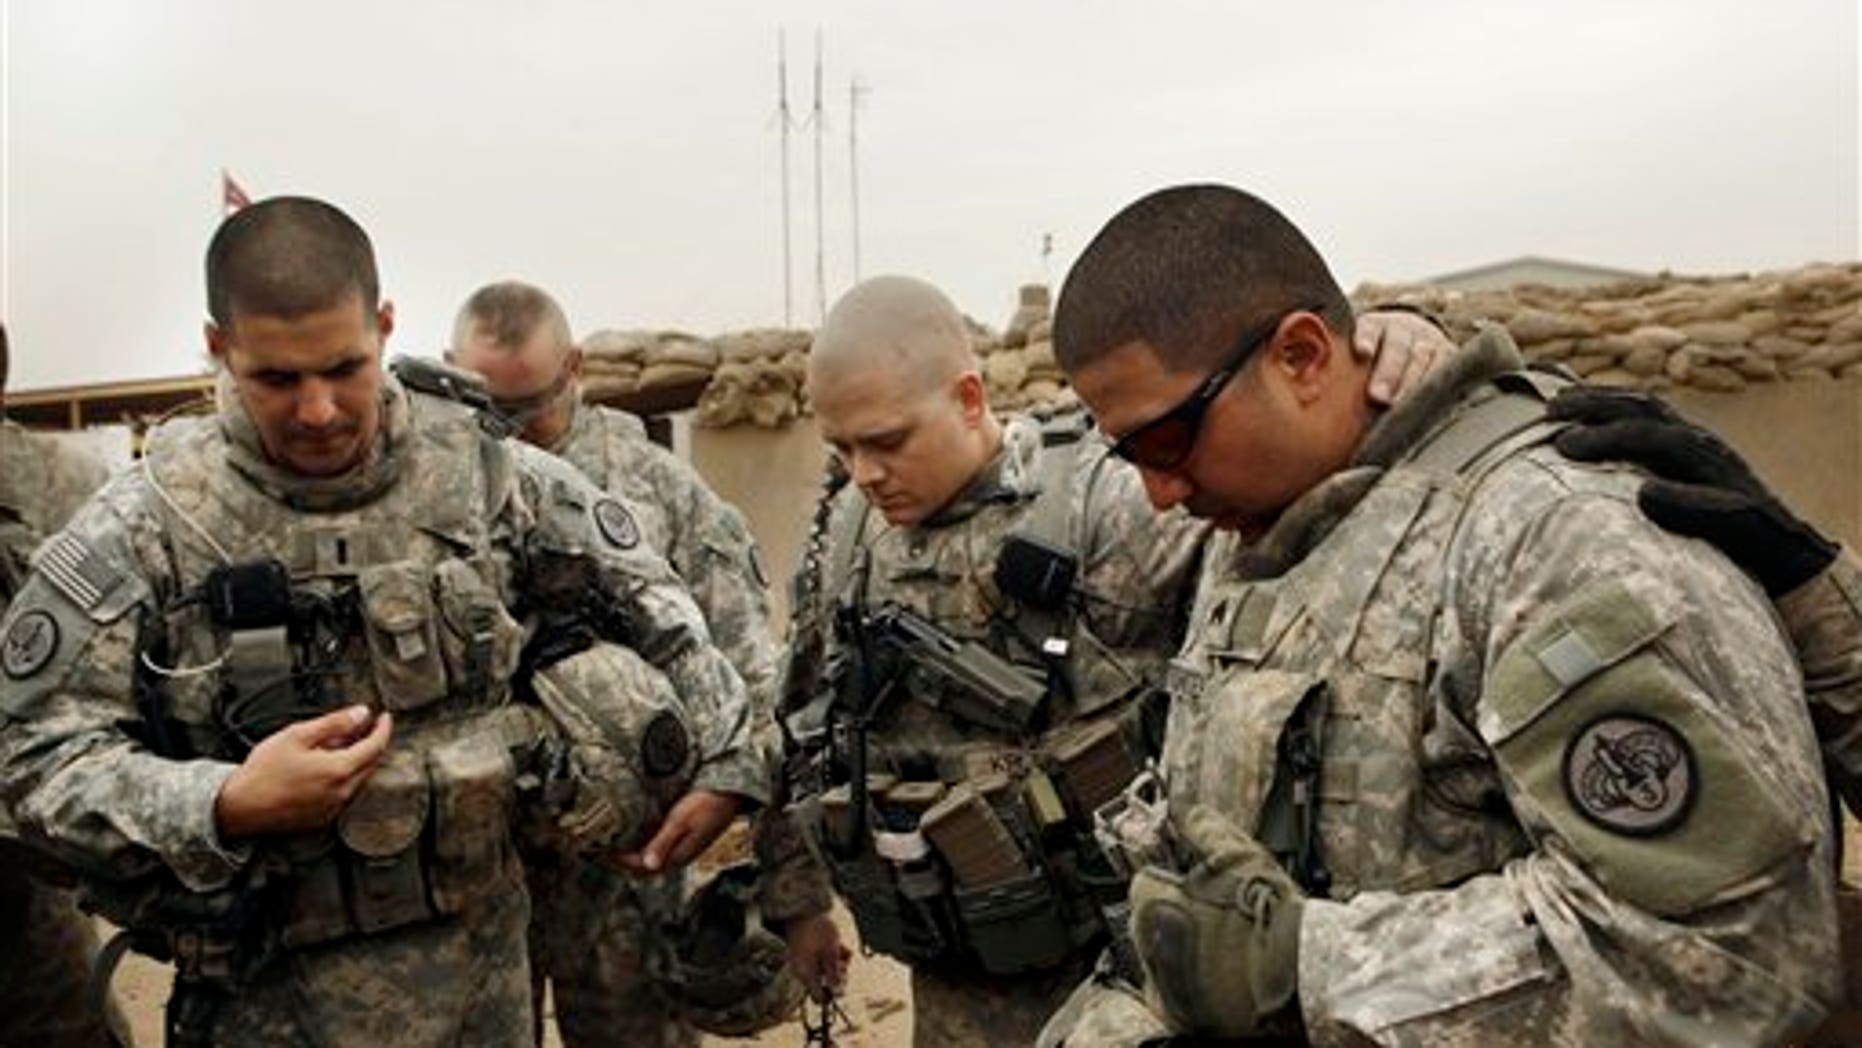 Jan. 2011: U.S. Army Lt. Daniel McCord, left, Staff Sgt. Marc Krugh, center and Sgt. Christopher Torrentes, right, from the 3rd Armored Cavalry Regiment pray before heading out on a patrol at Contingency Operating Site Kalsu, south of Baghdad, Iraq.